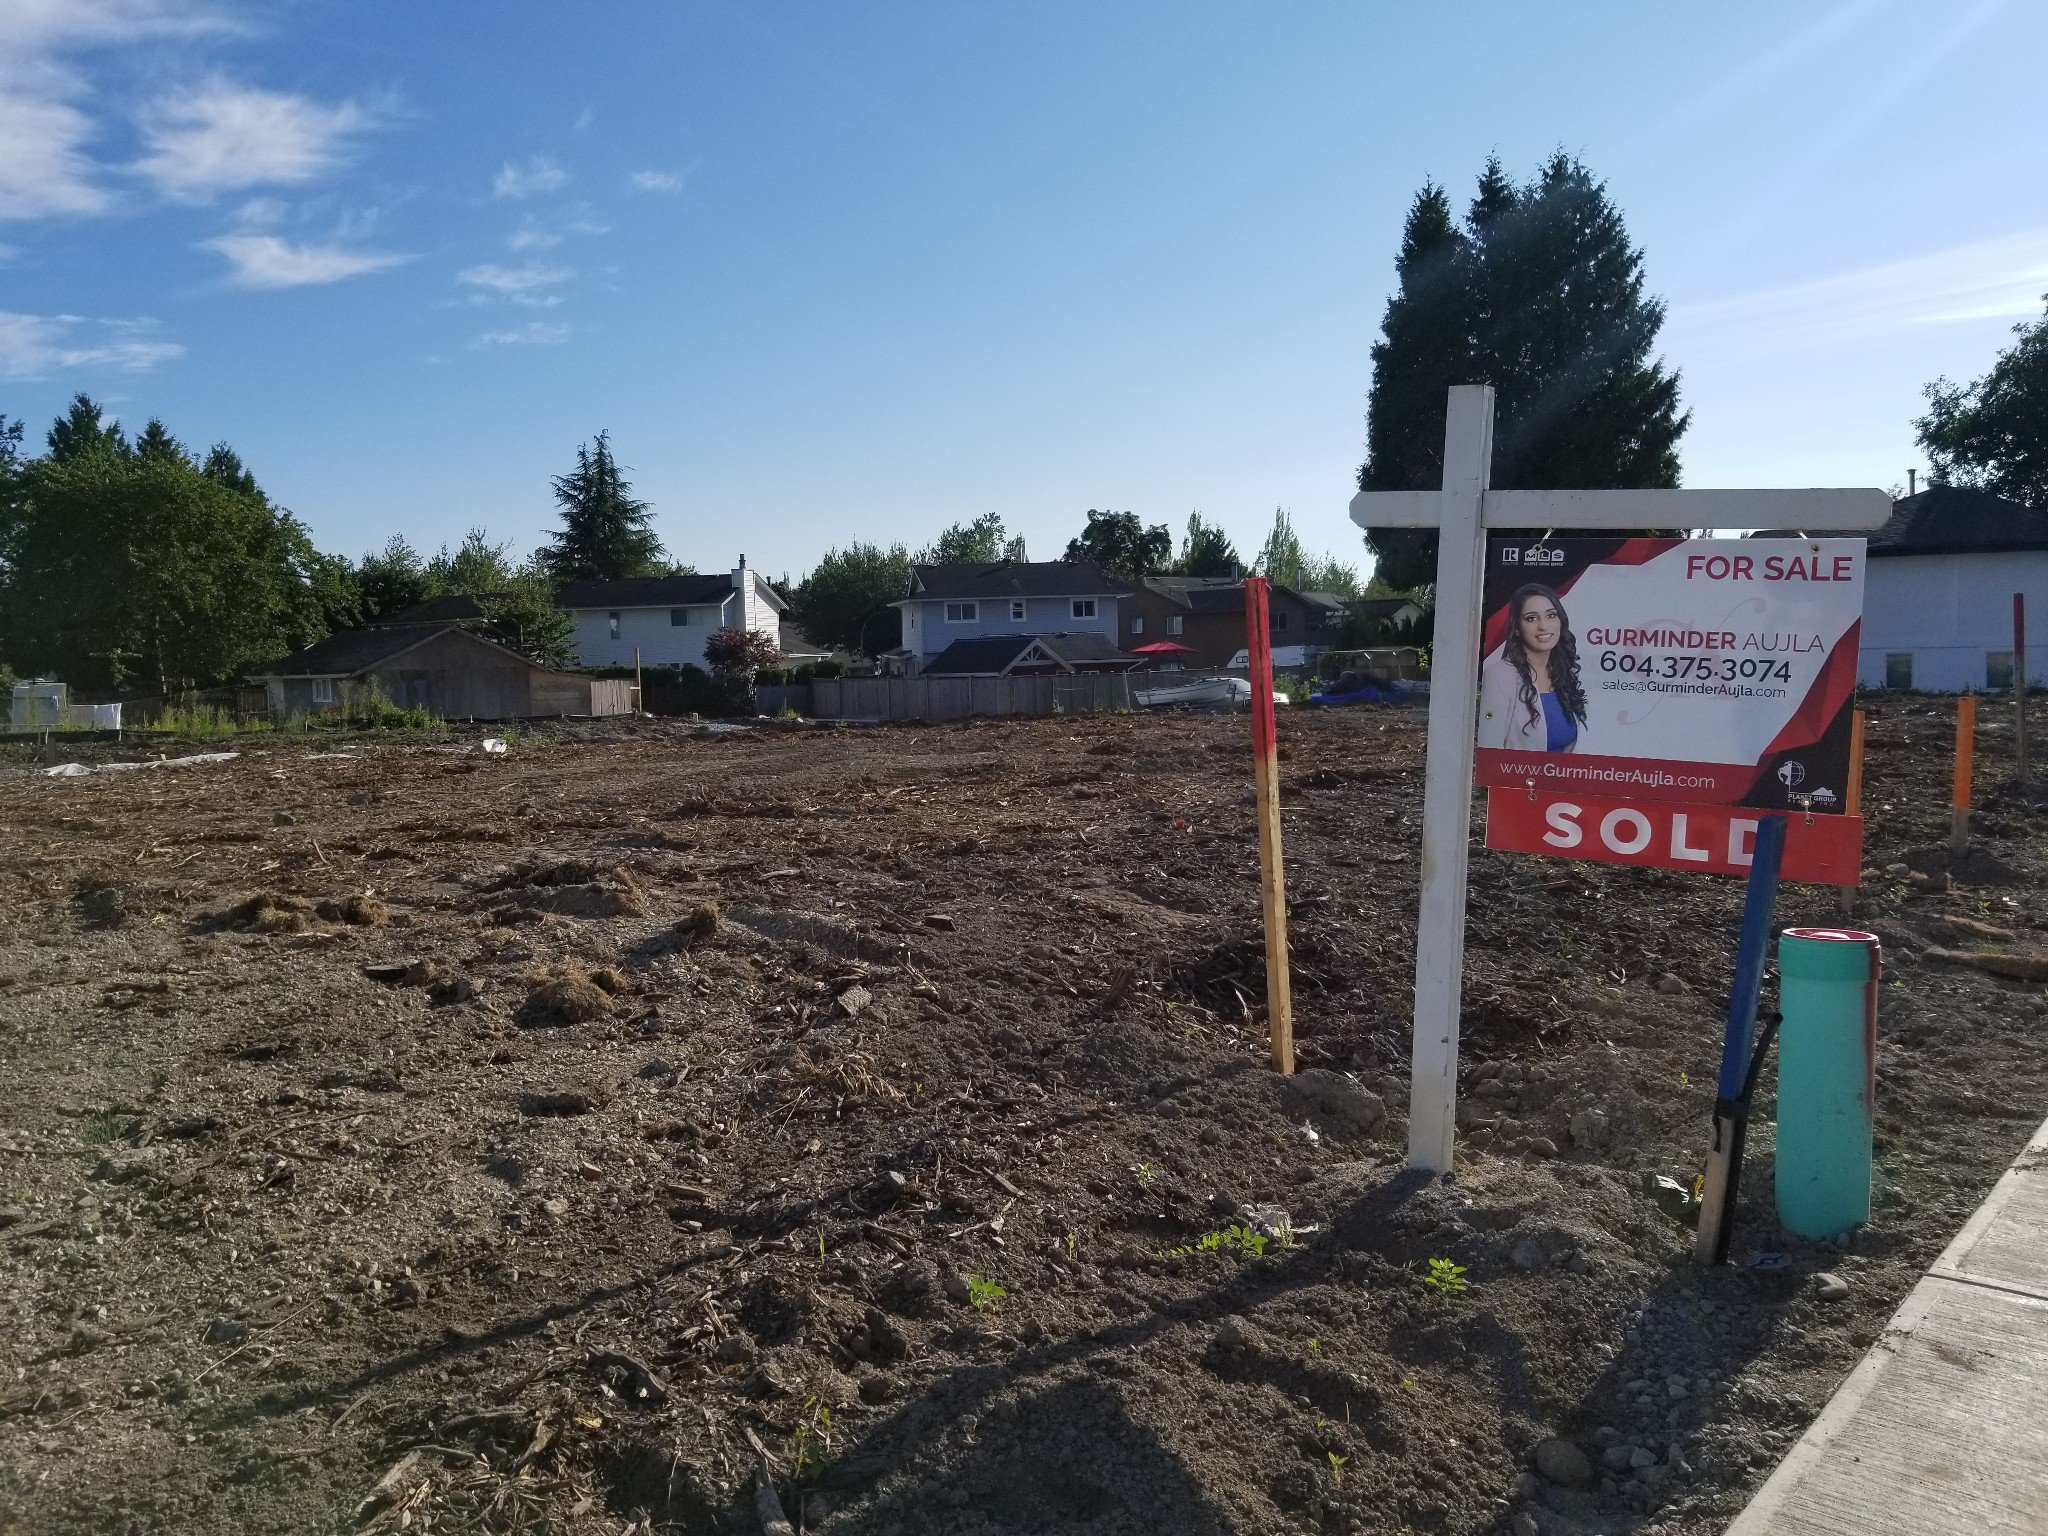 Main Photo: 18392 60Ave in Cloverdale: Cloverdale BC Land for sale